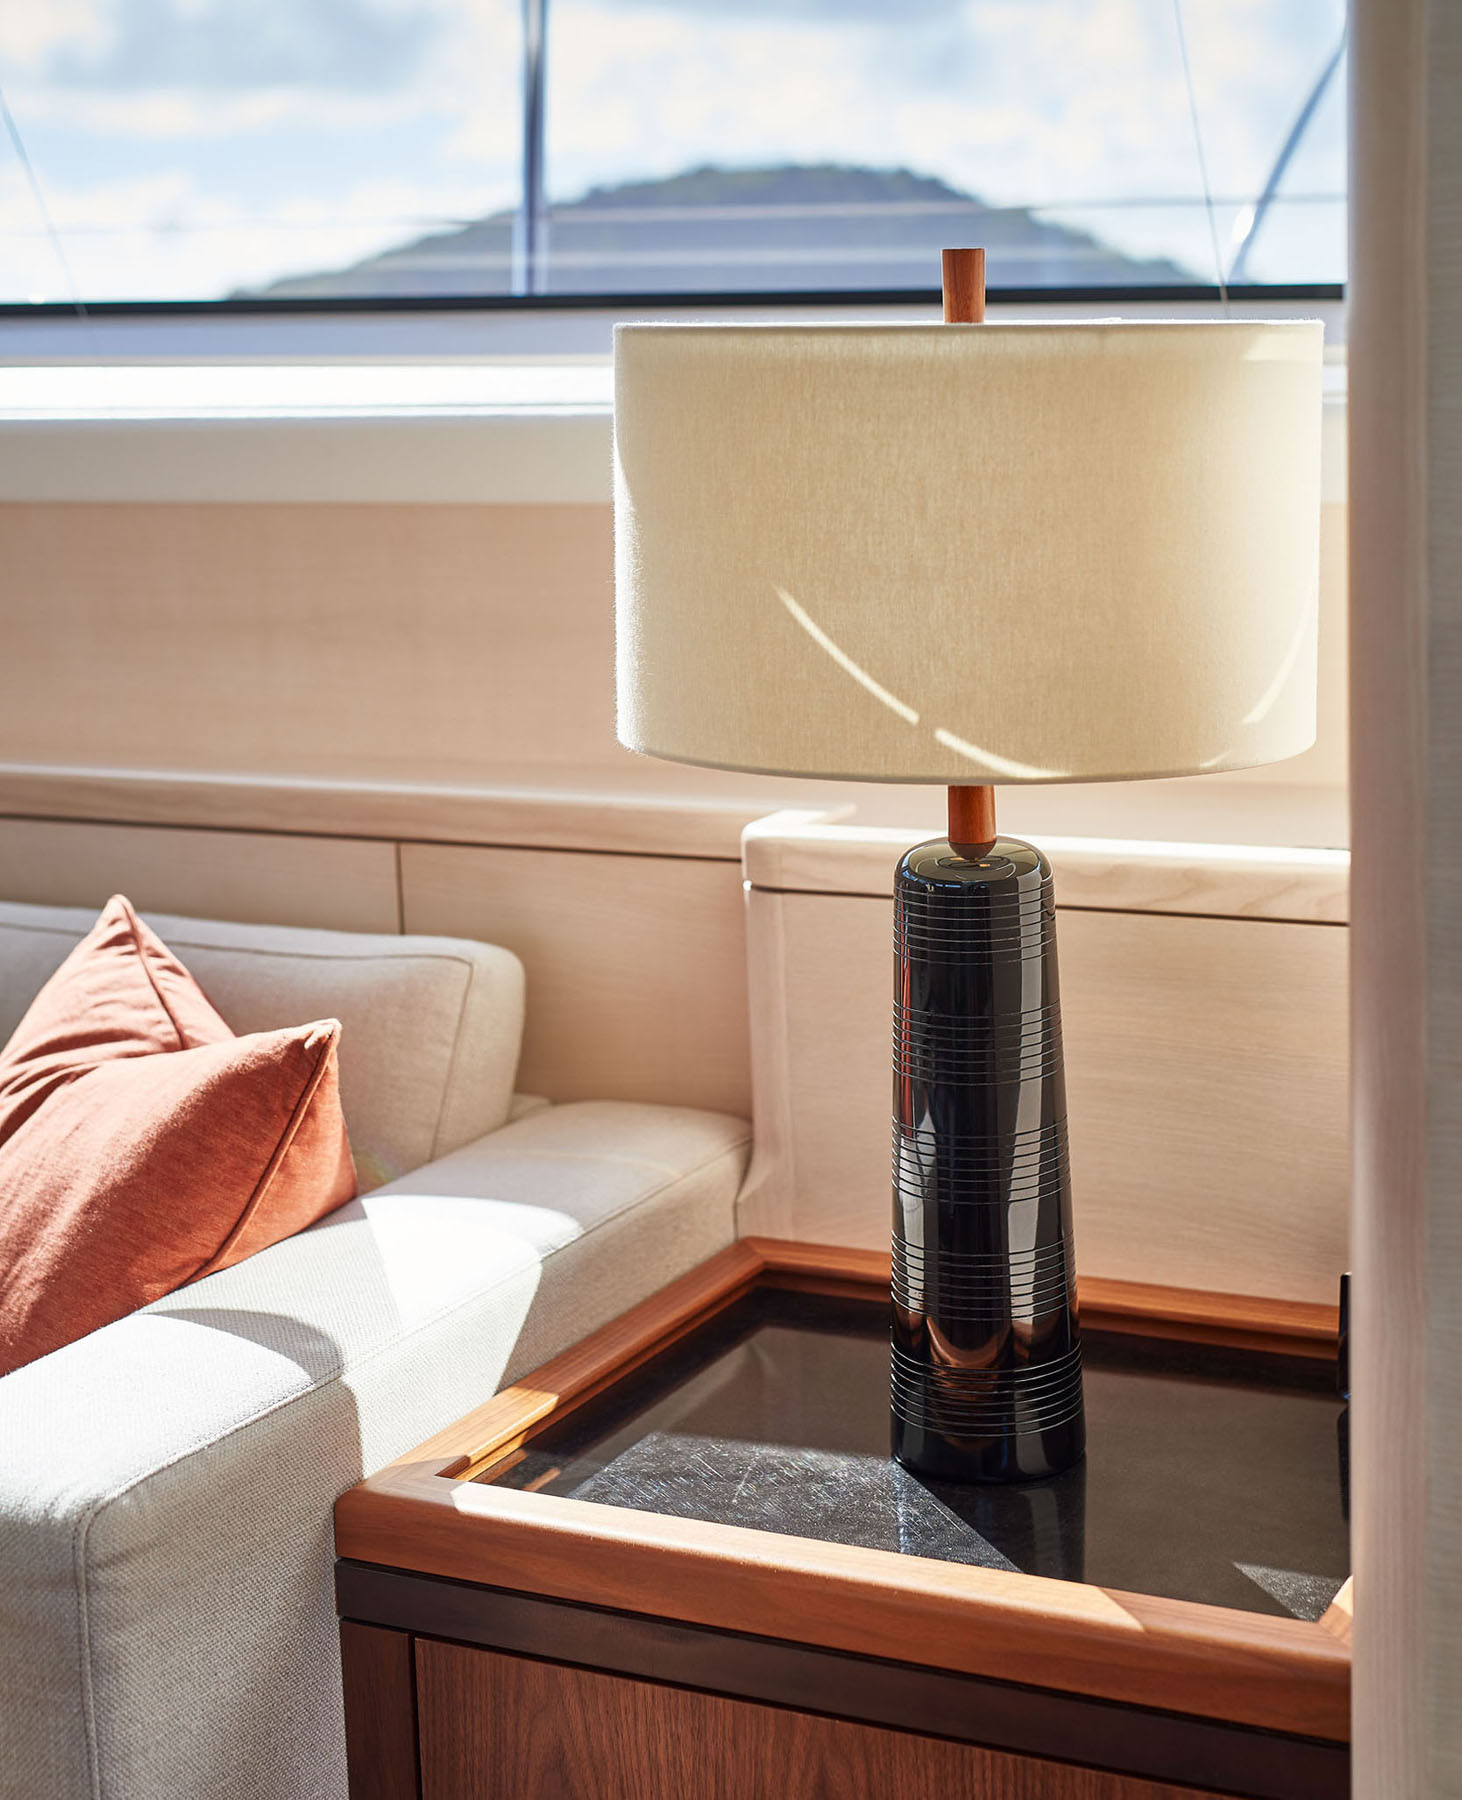 Lamp detail onboard the S/Y Archelon